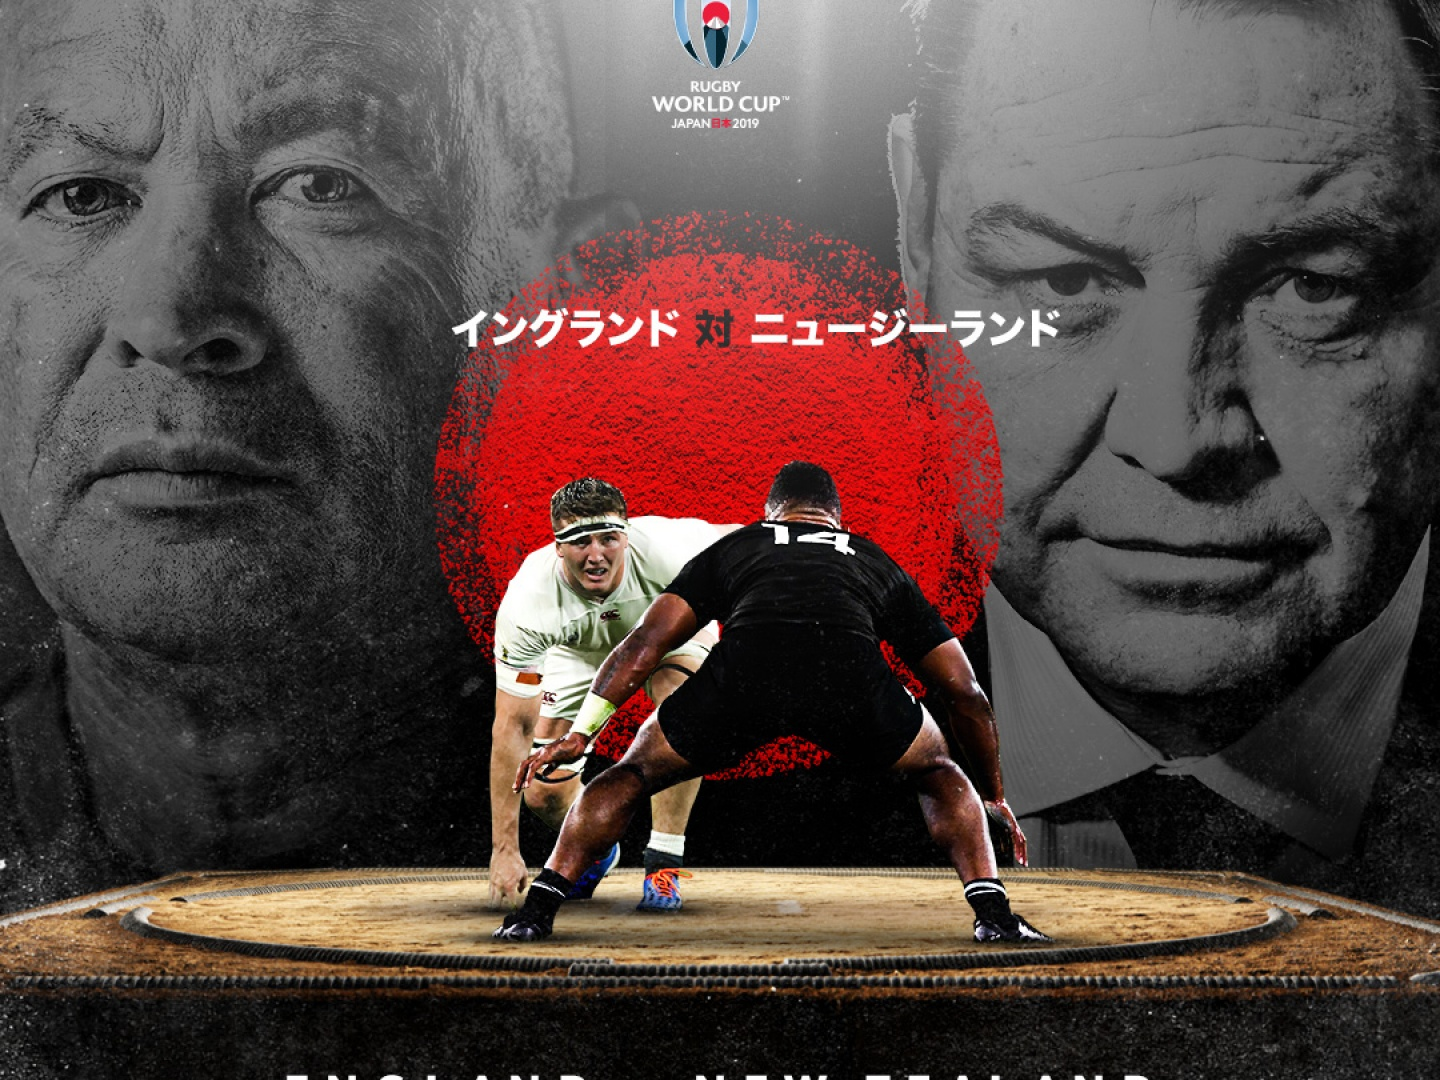 Rugby World Cup - Japan 2019  Thumbnail